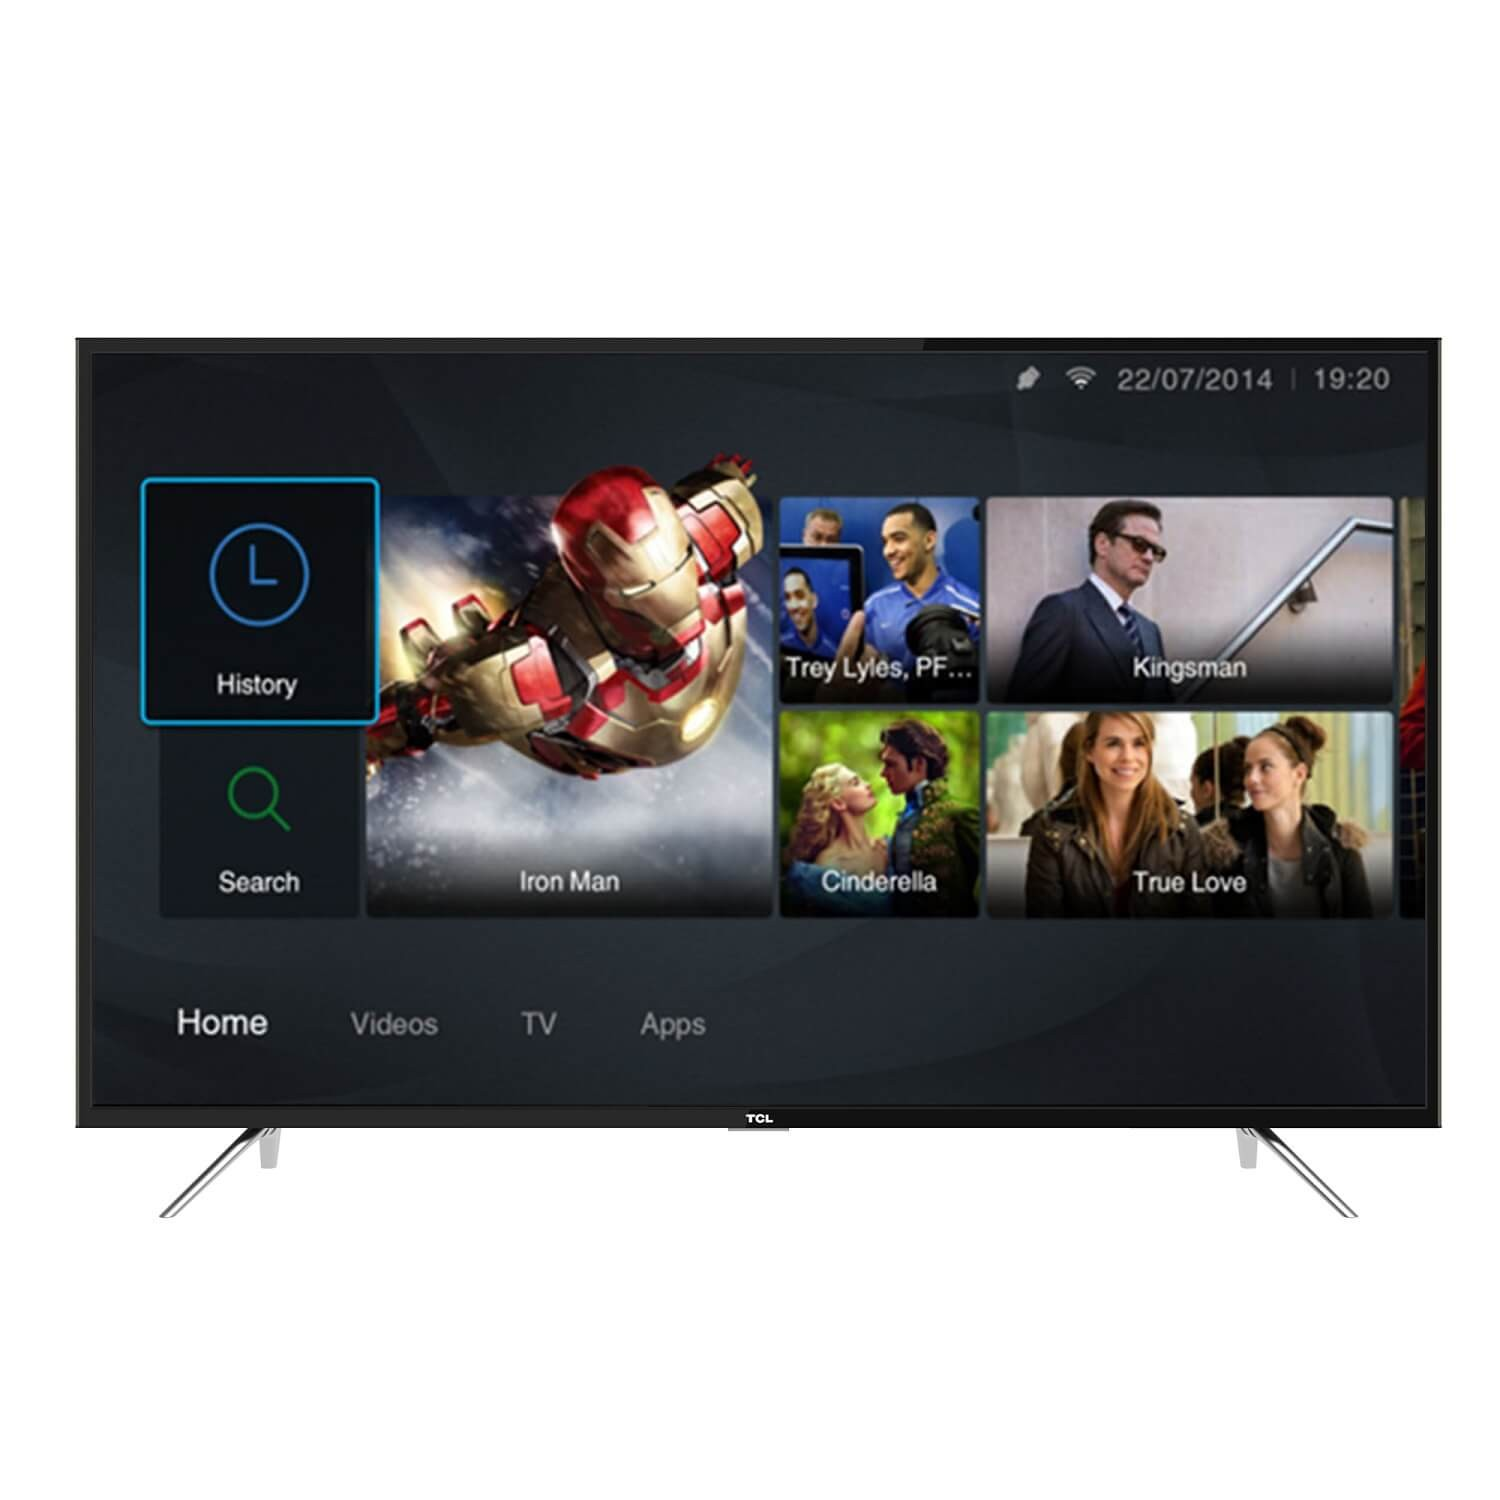 TCL 43-inch DIGITAL SMART TV - S6000 1